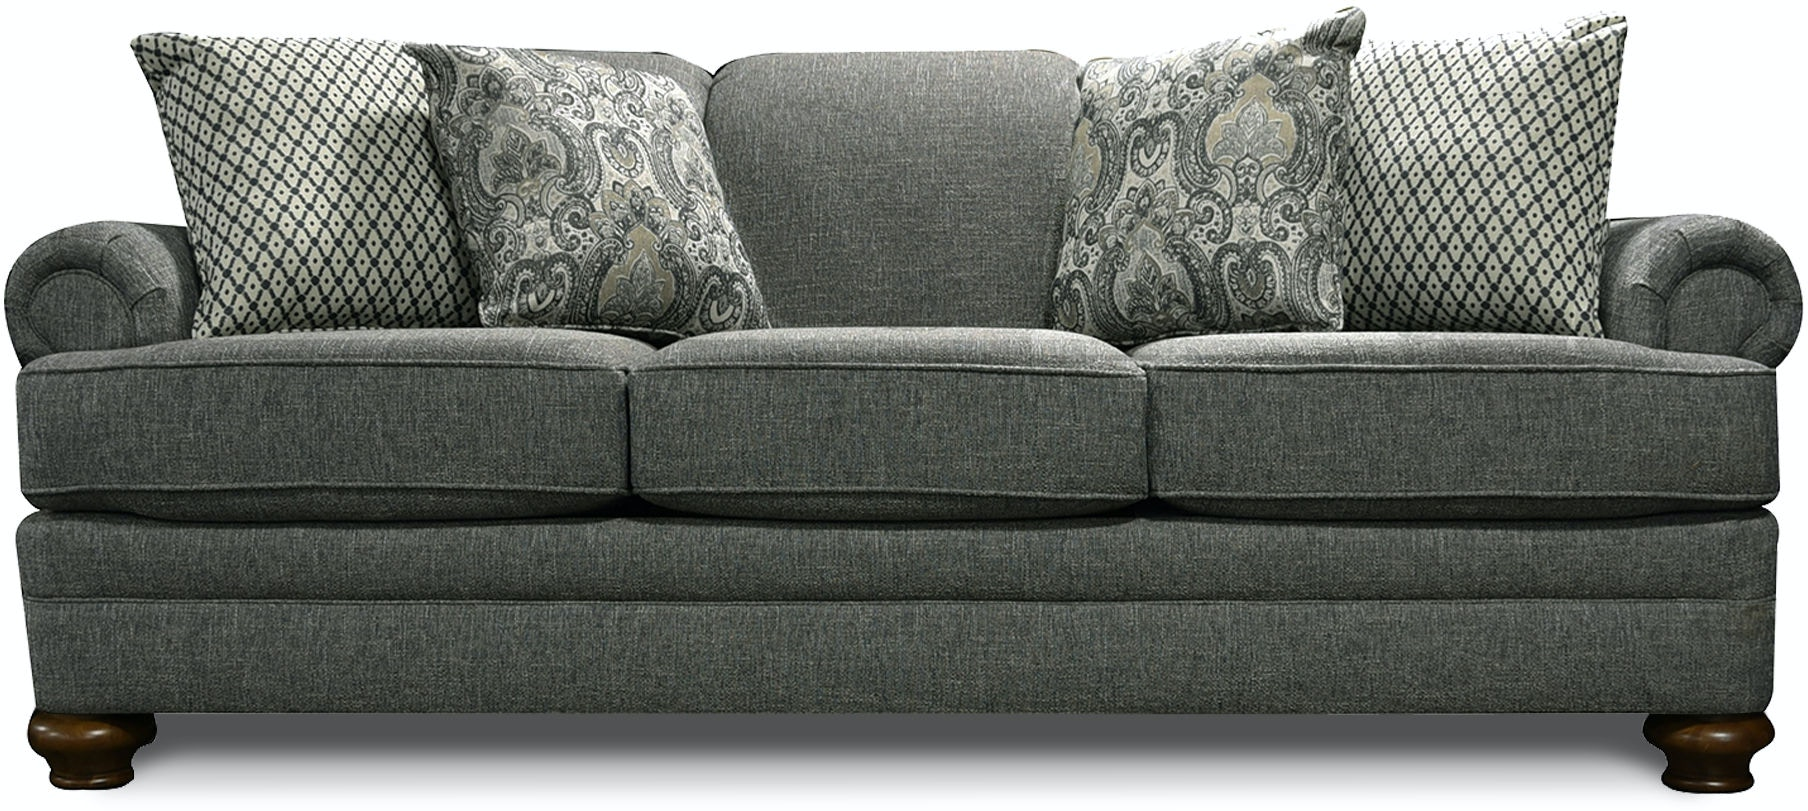 England Living Room Reed Sofa 200054 Hansens Furniture